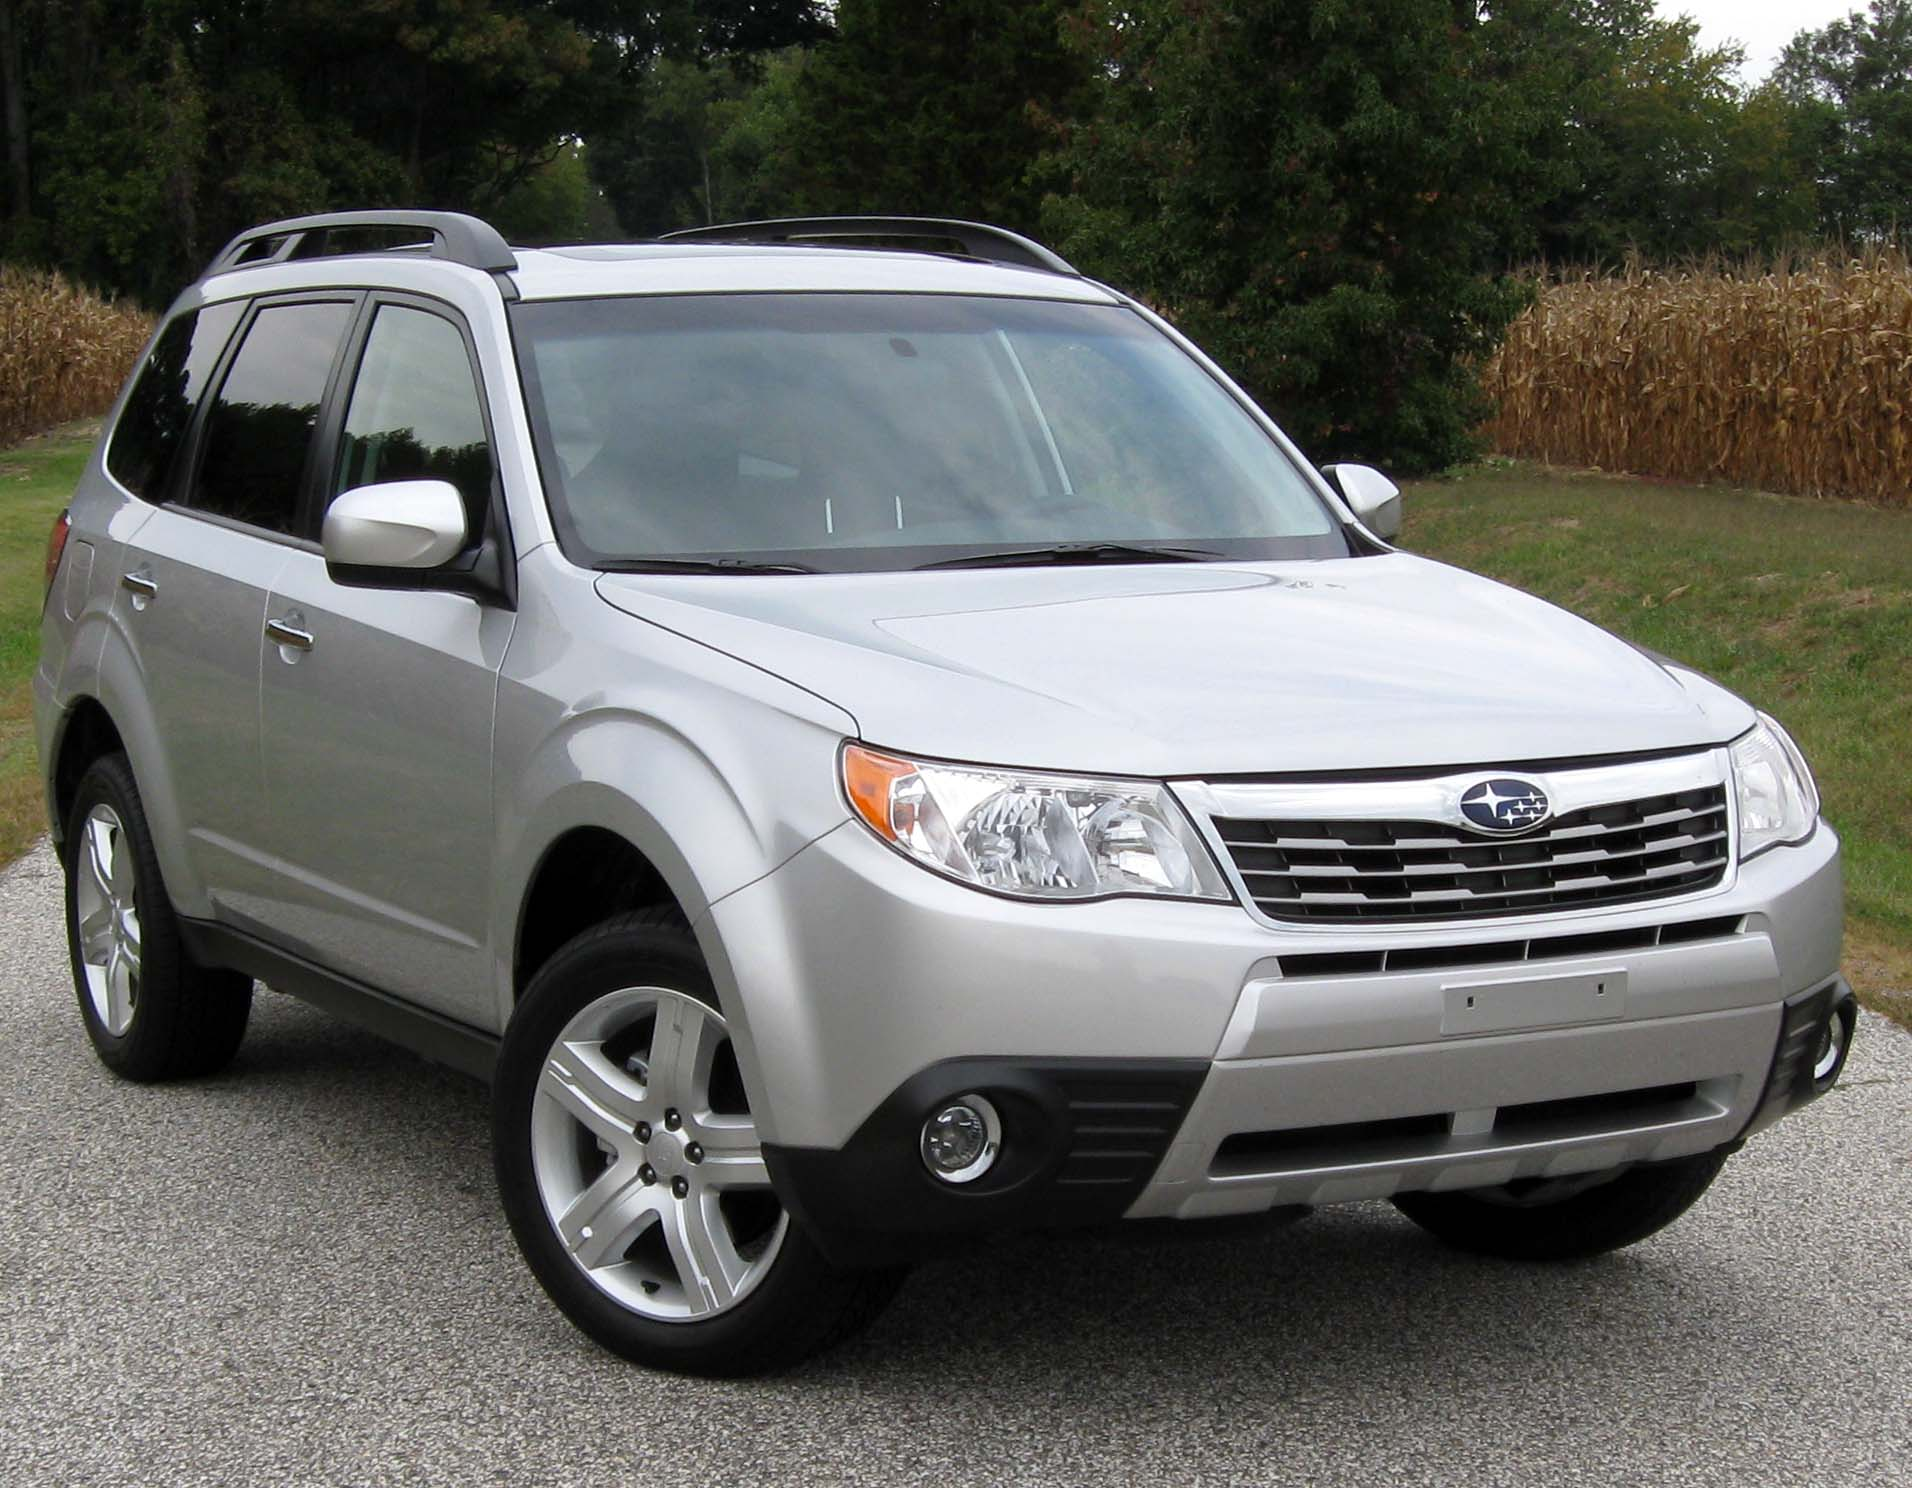 subaru forester 2.5 x limited-pic. 1